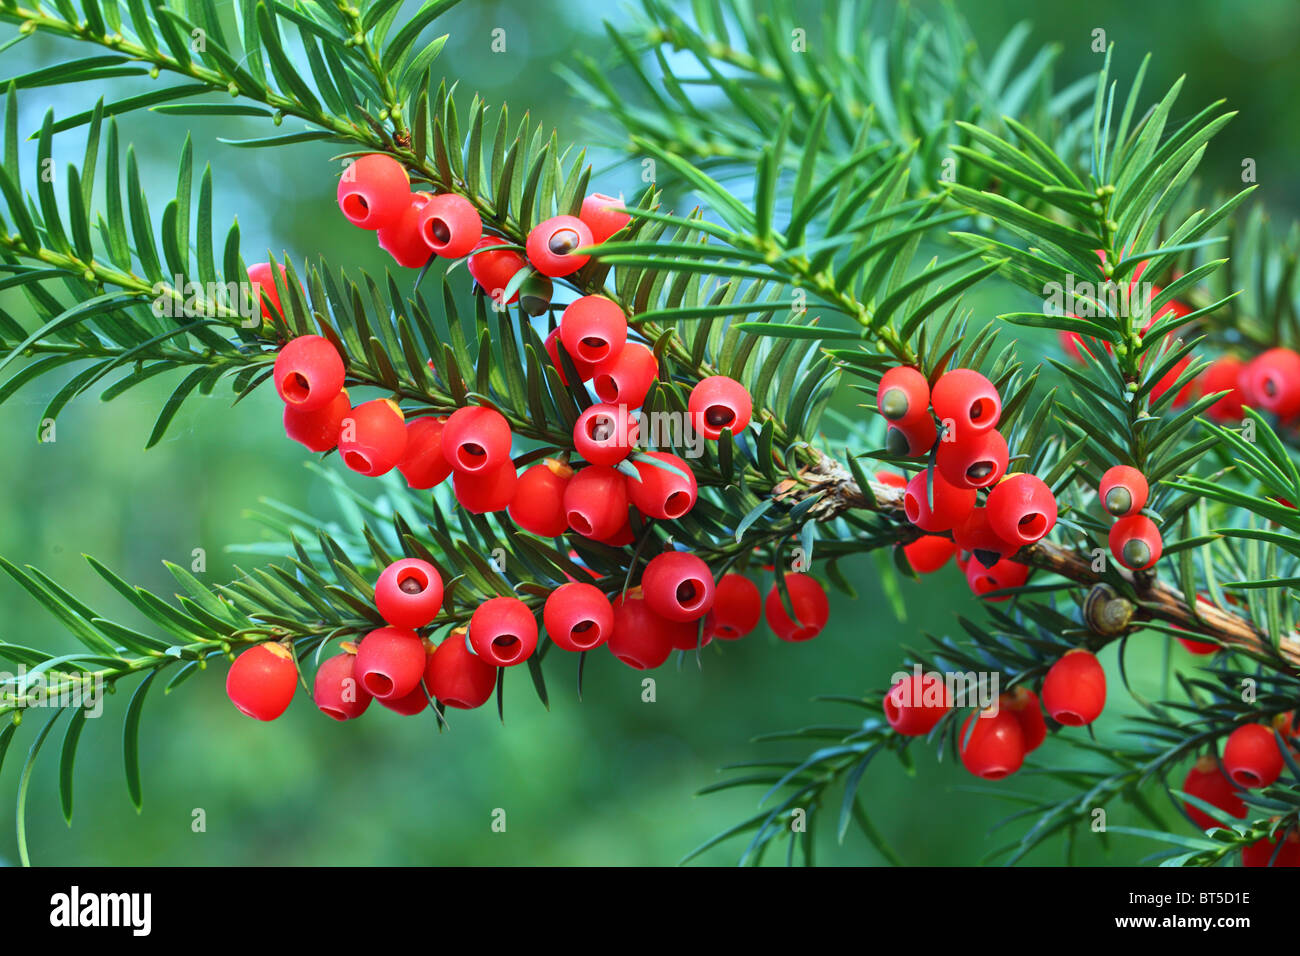 Yew tree red berries on a twig Taxus baccata - Stock Image